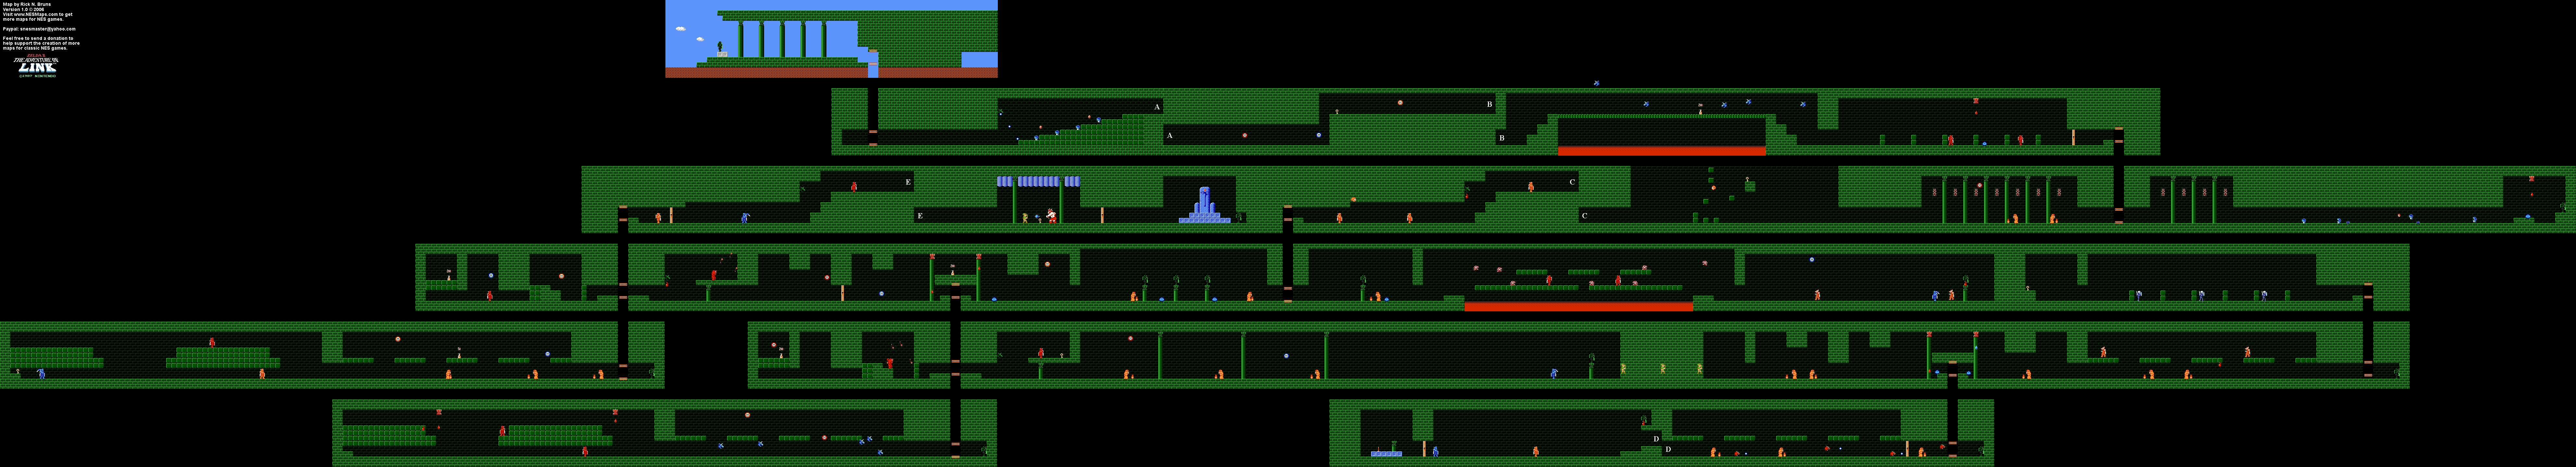 Zelda II - Palace on the Sea (Level 5) Map [31] on minish cap map, spirit tracks map, skyward sword map, castlevania map, warcraft ii map, metal gear map, metroid ii map, link ii map, oracle of ages map, twilight princess map, diablo ii map, super mario map, four swords adventures map, phantom hourglass map, majora's mask map, oracle of seasons map, wind waker map, dragon quest 2 map,